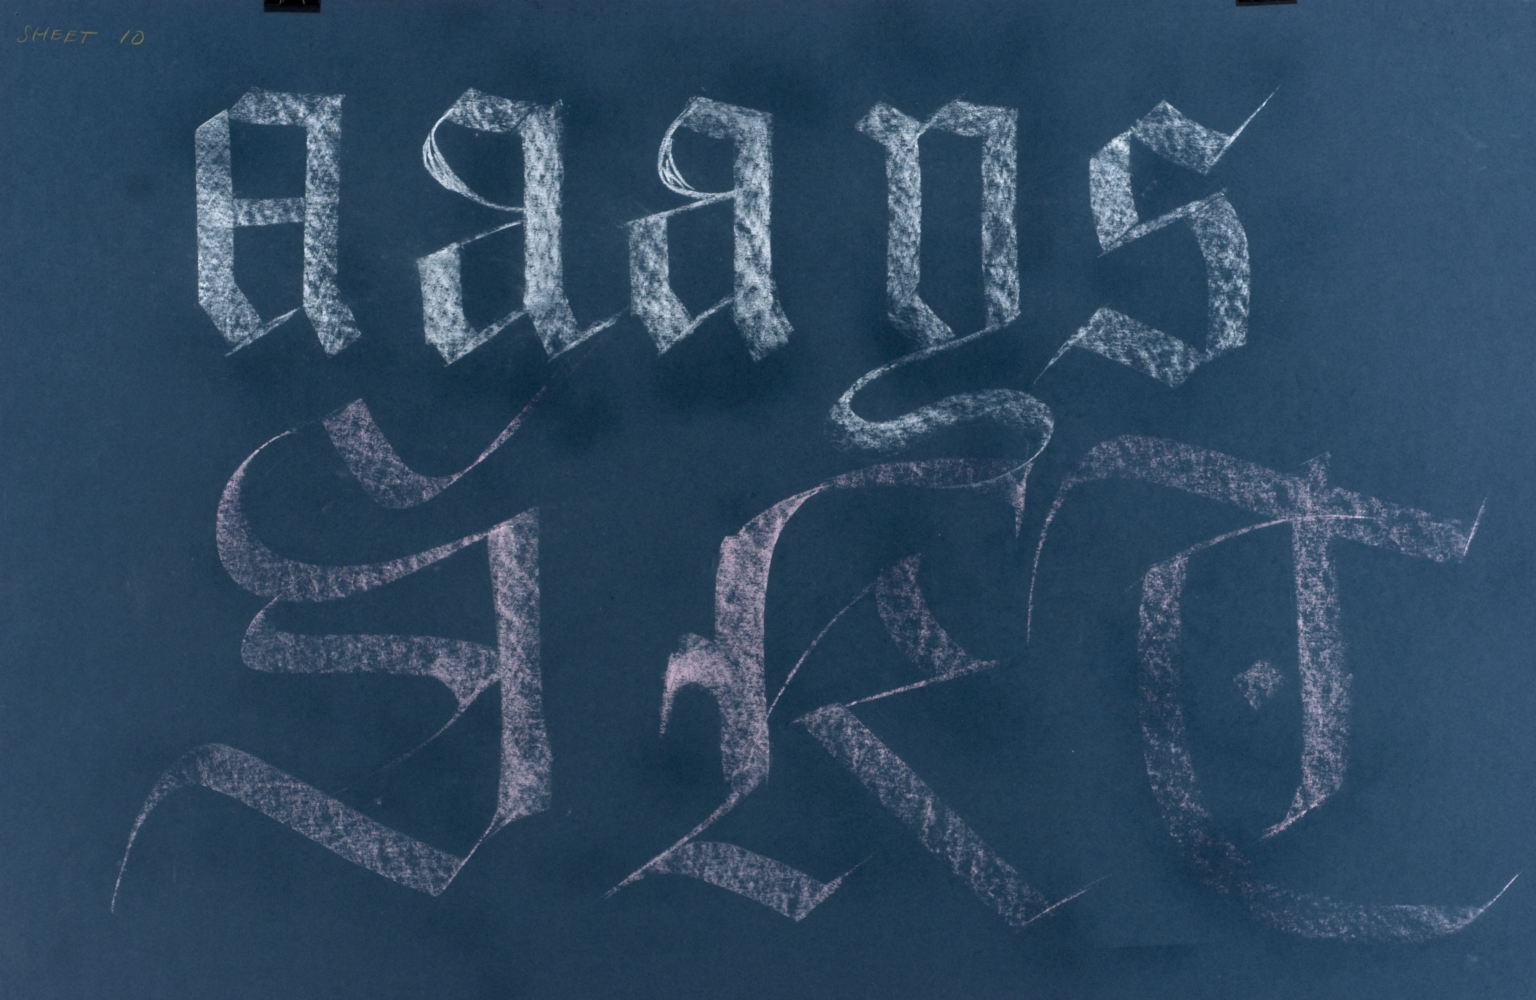 Calligraphic teaching sheet, textura letters